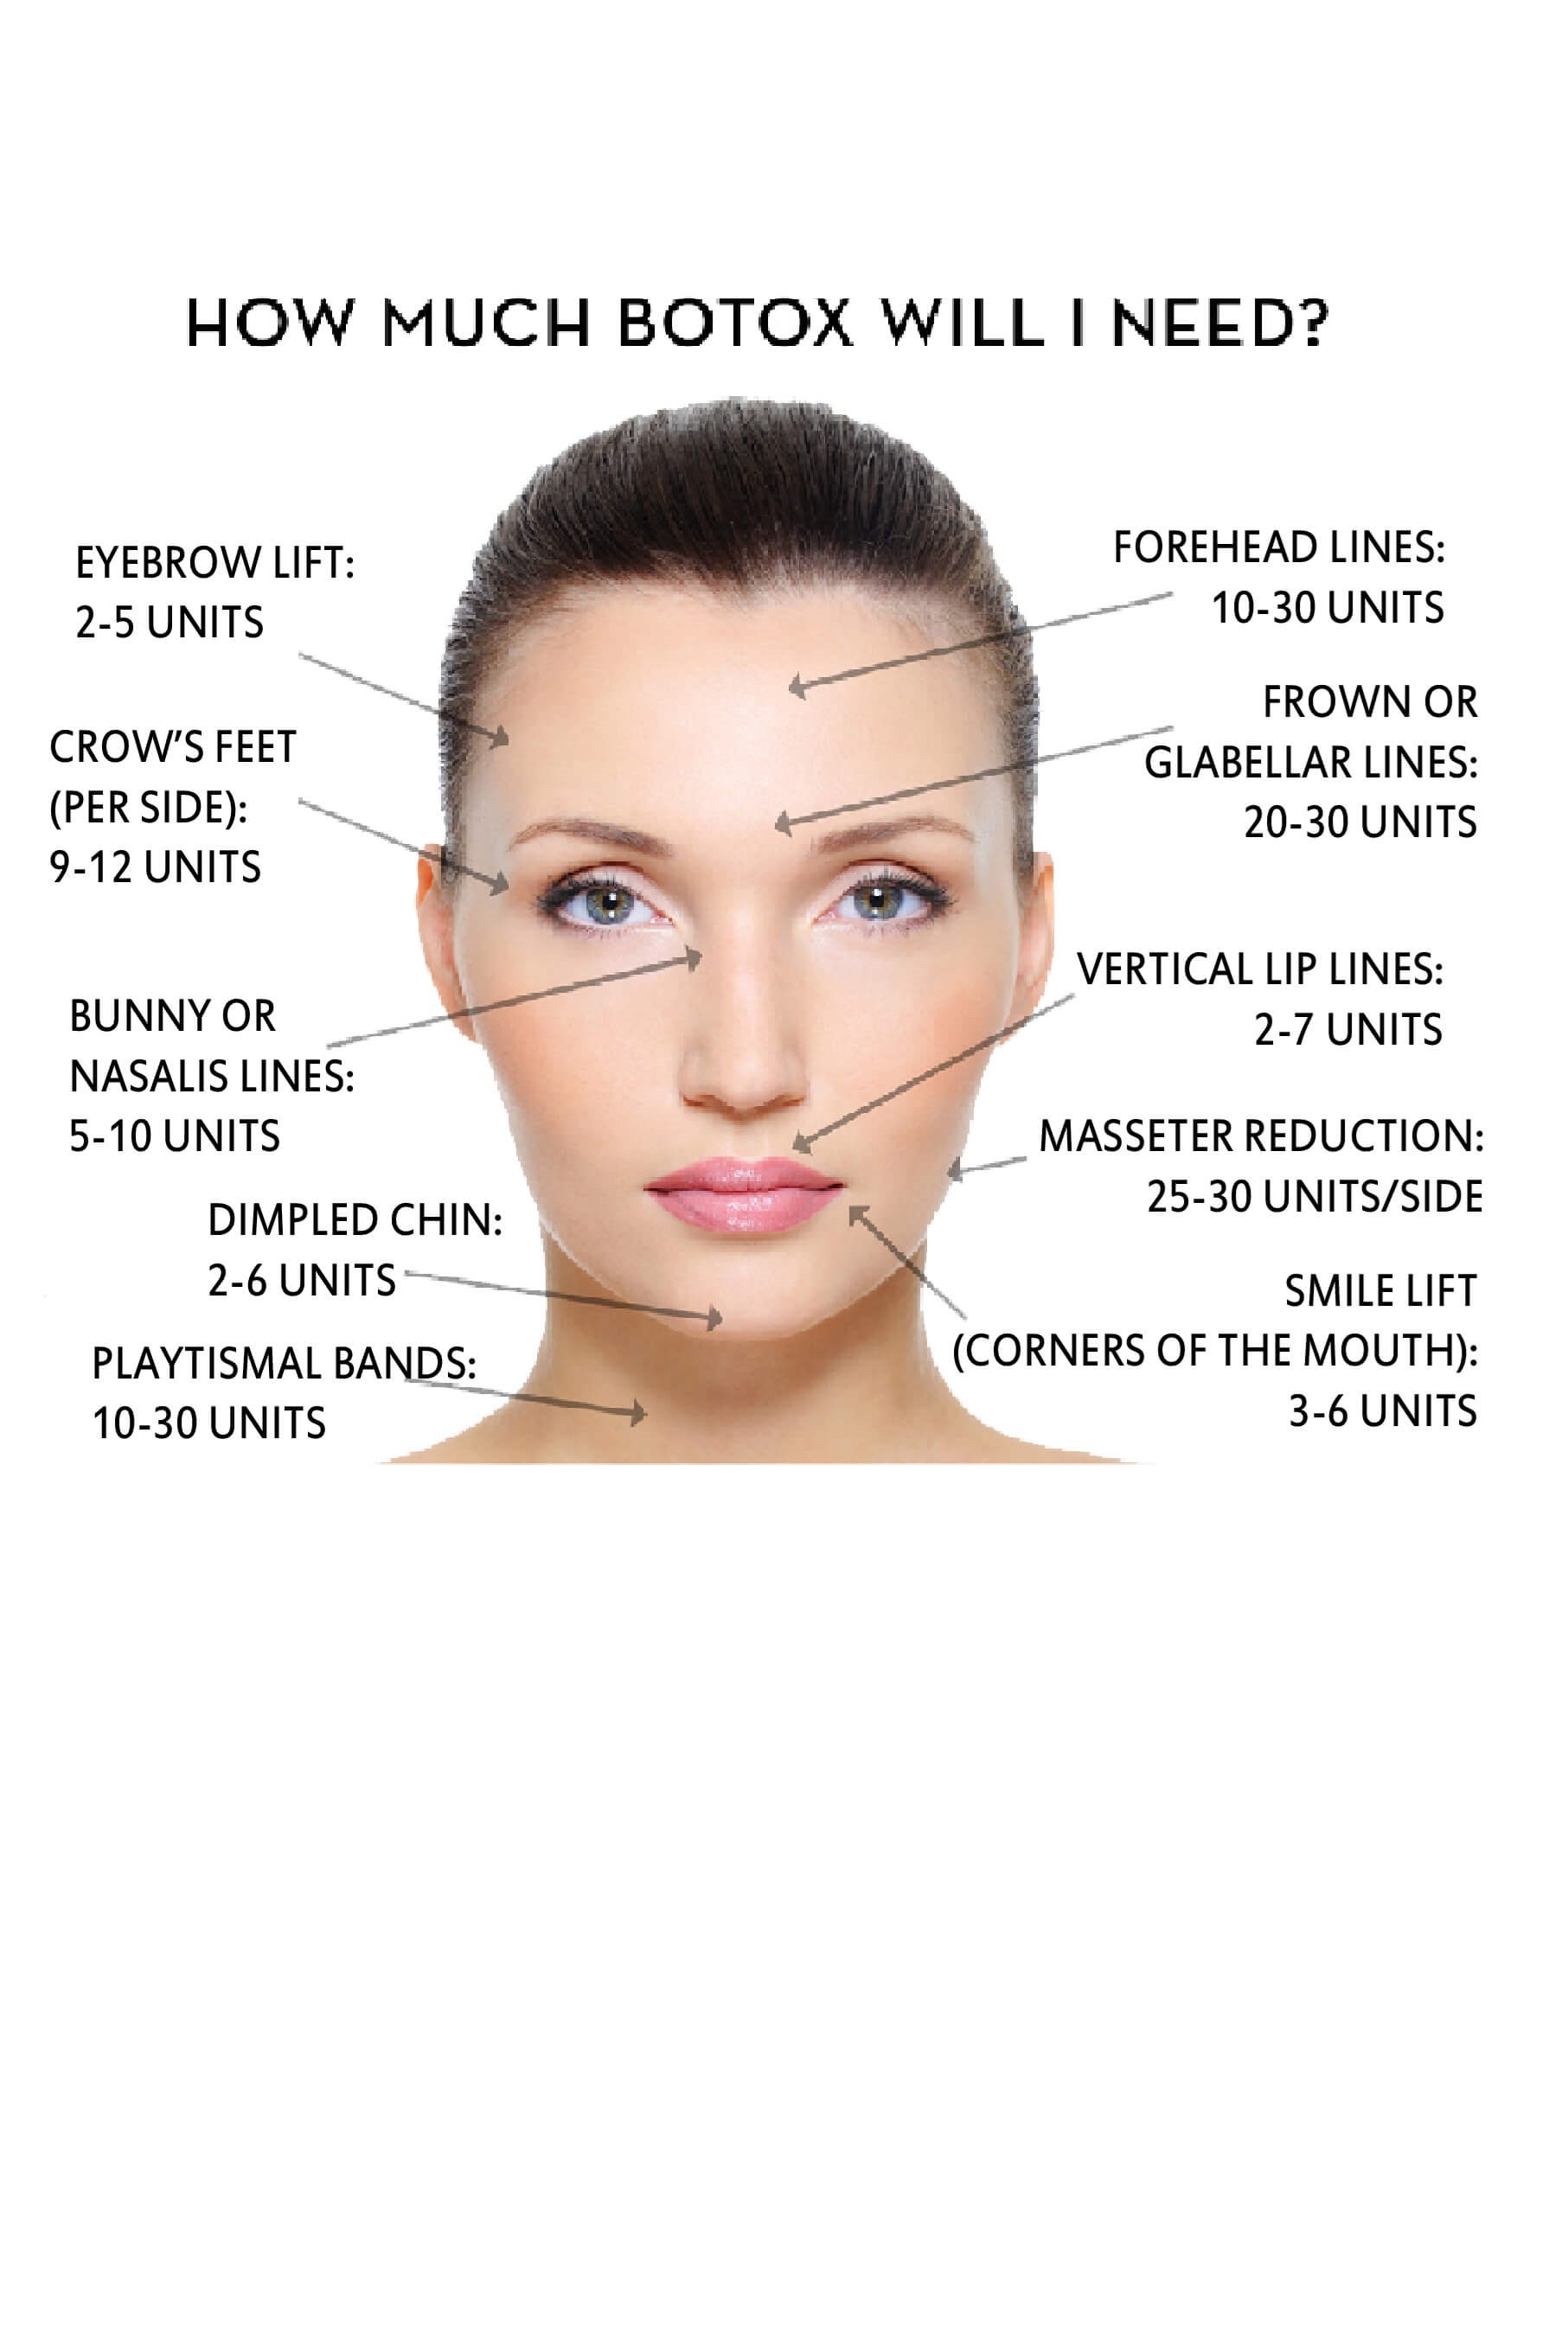 General Guide for Botox